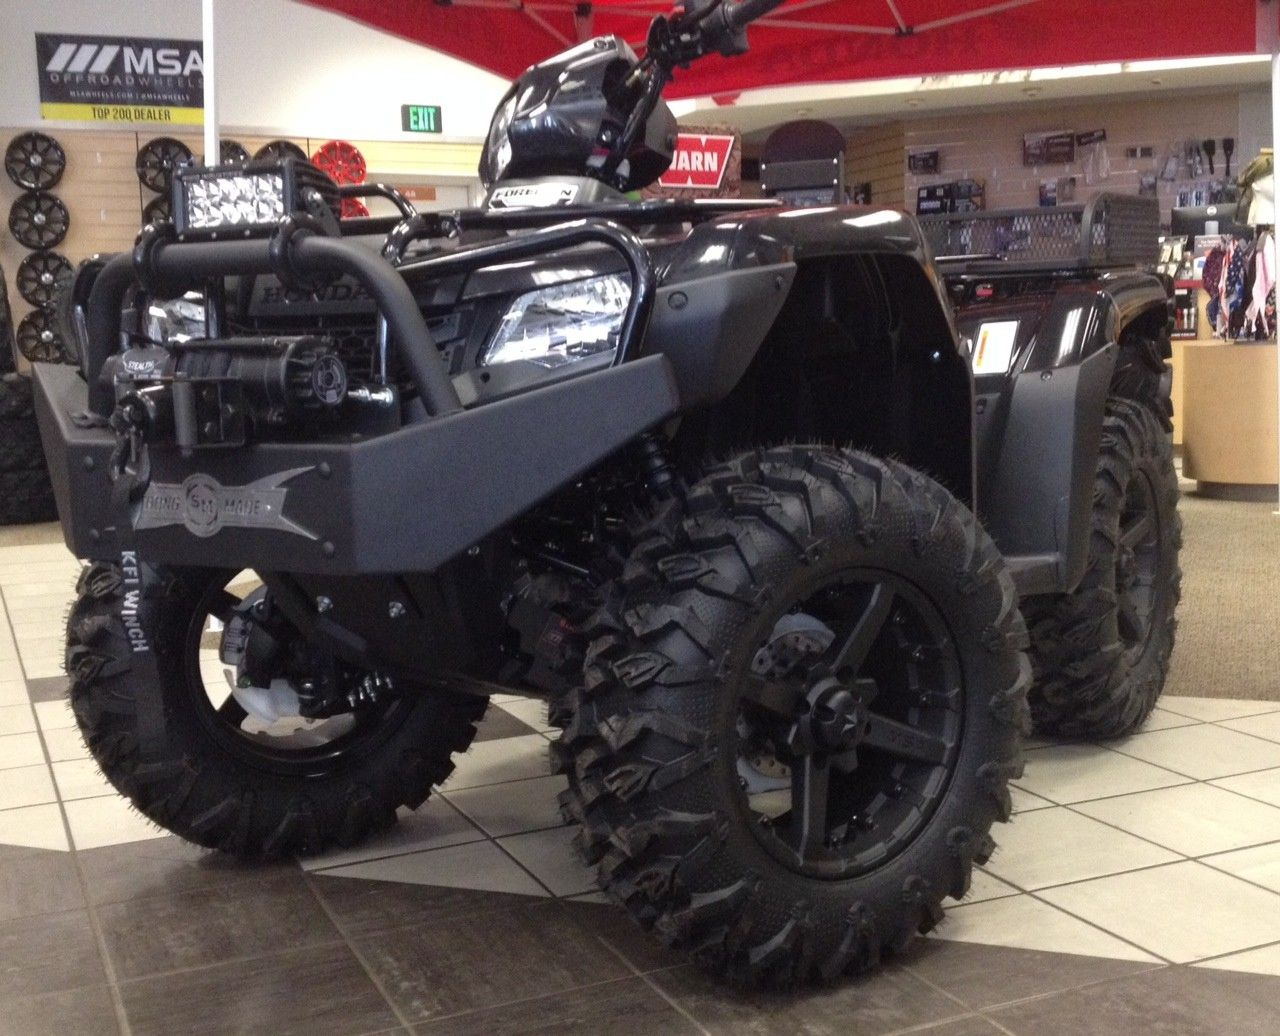 BG-46W - Winch Series Front Bumper for Honda Foreman 500 & Rancher 420 | Four wheelers ...